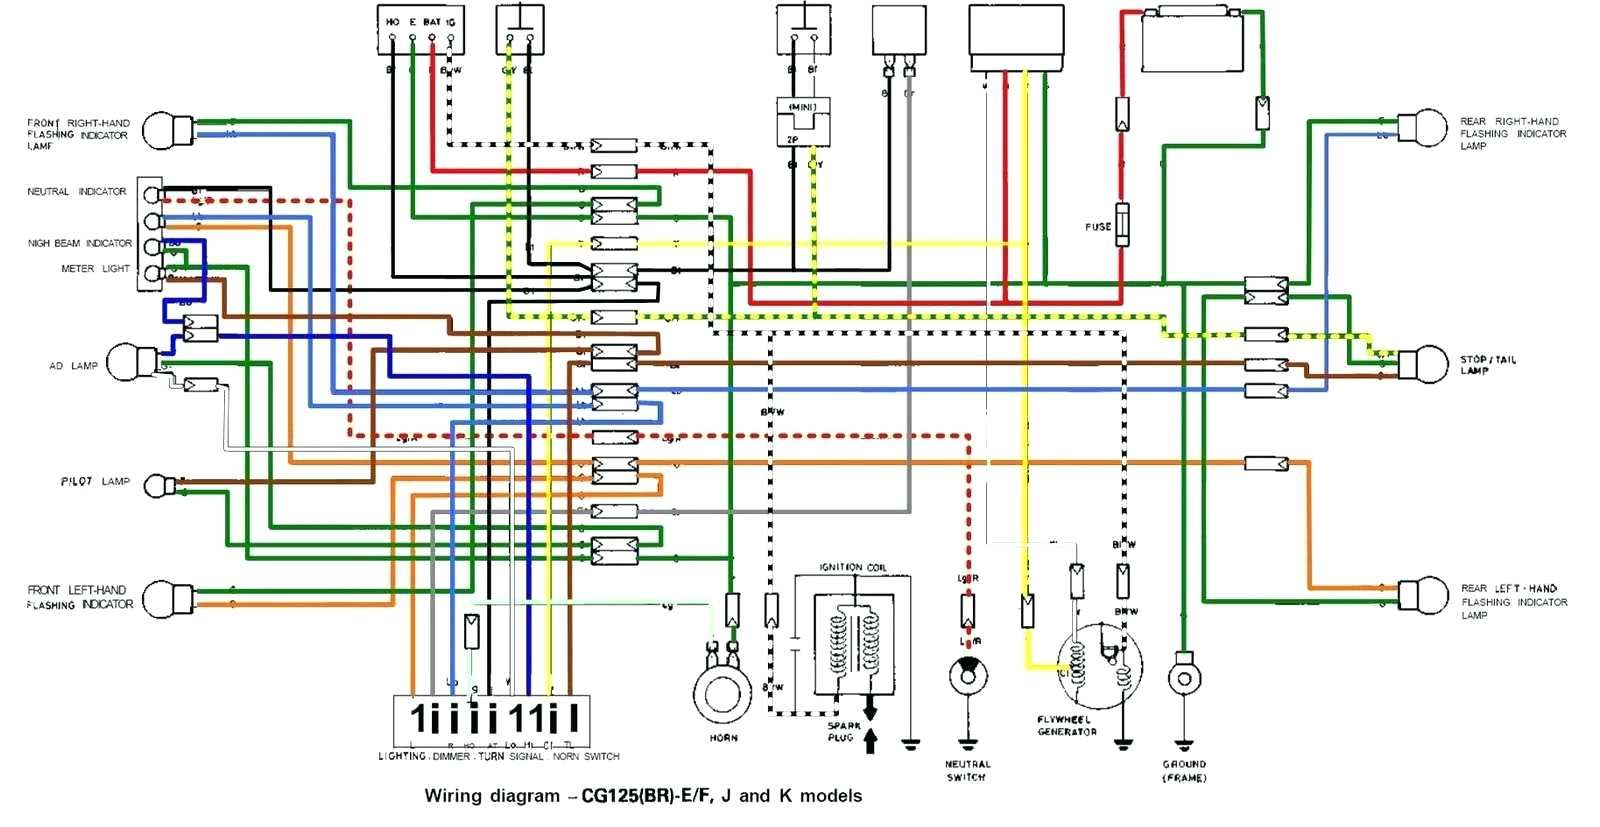 honda xrm 125 wiring diagram photography cheat sheets honda honda city electrical wiring diagram honda electrical wiring diagrams [ 1600 x 827 Pixel ]